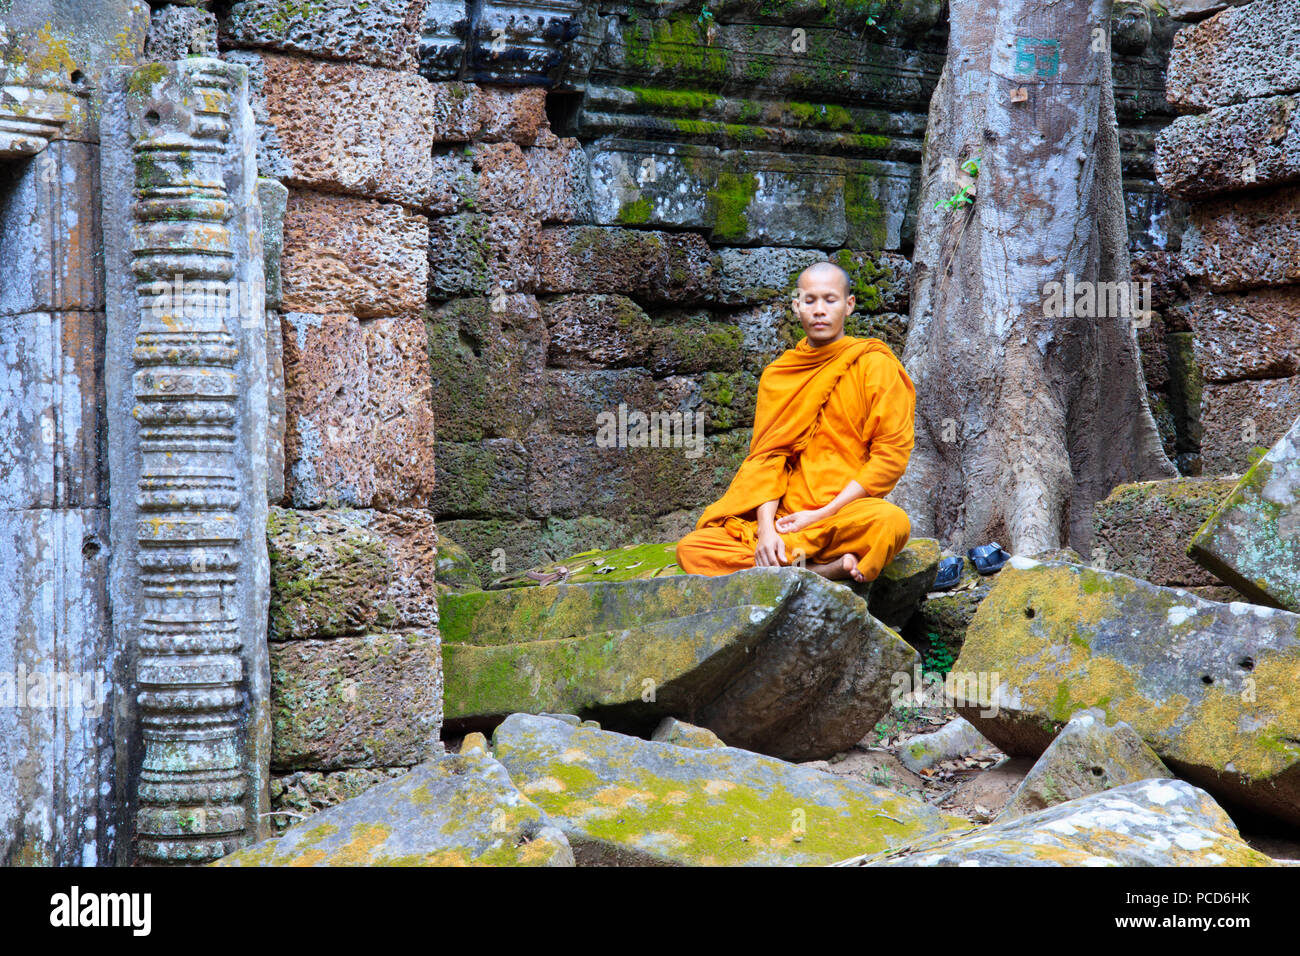 Buddhist monk sitting in a ruined temple in Angkor, UNESCO World Heritage Site, Siem Reap, Cambodia, Indochina, Southeast Asia, Asia - Stock Image